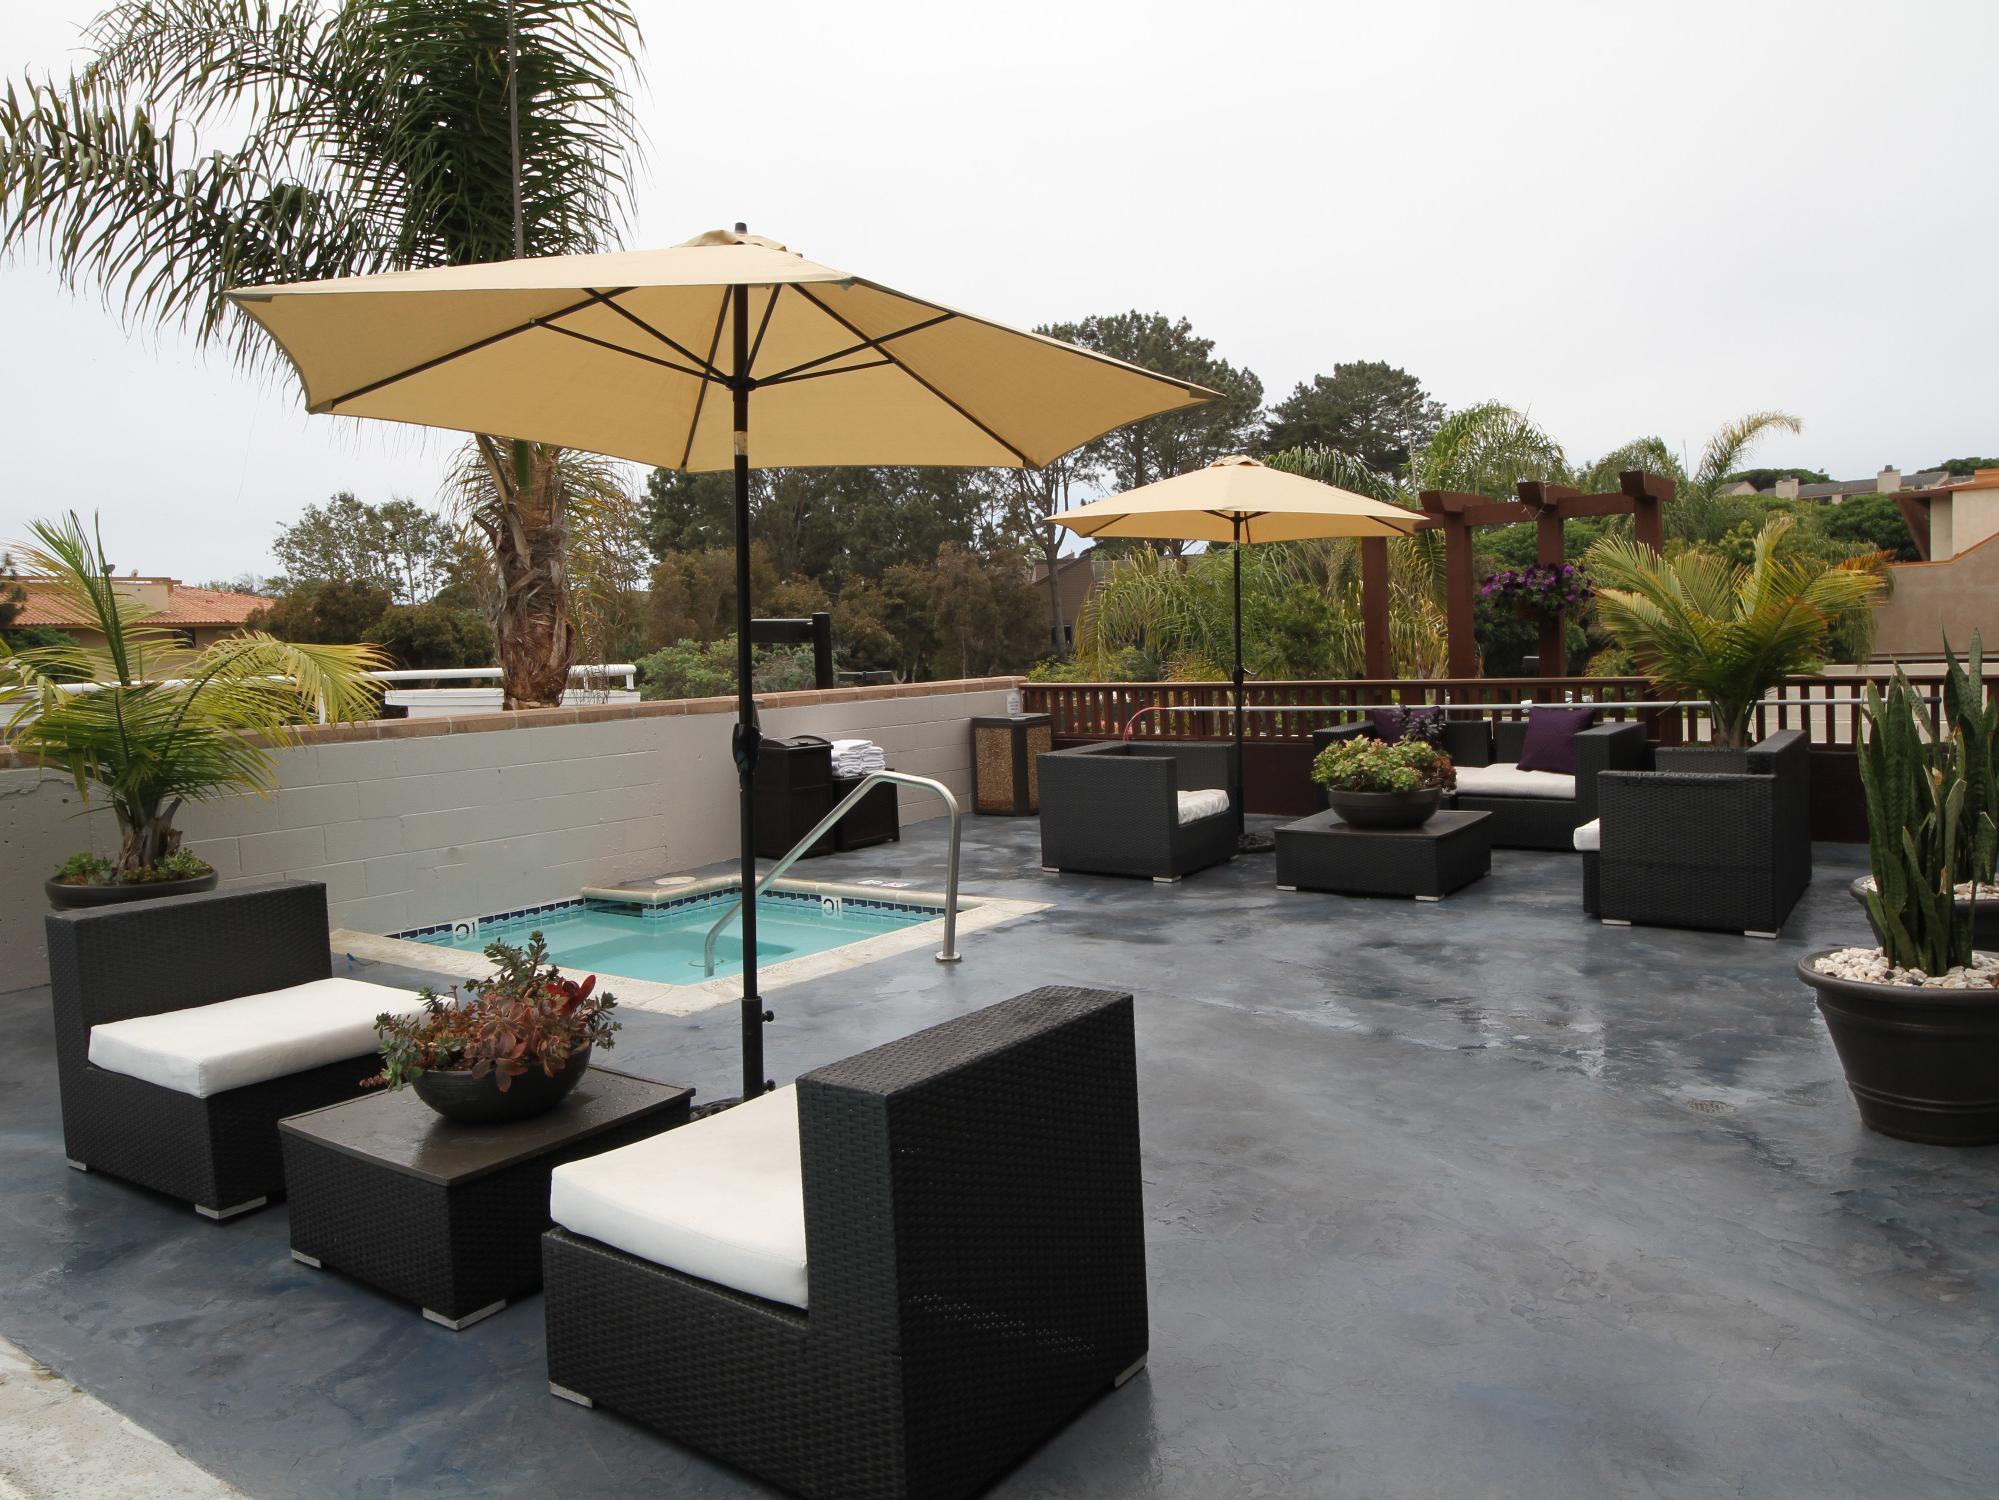 Holiday Inn Express Solana Beach Whirlpool and Pool Deck